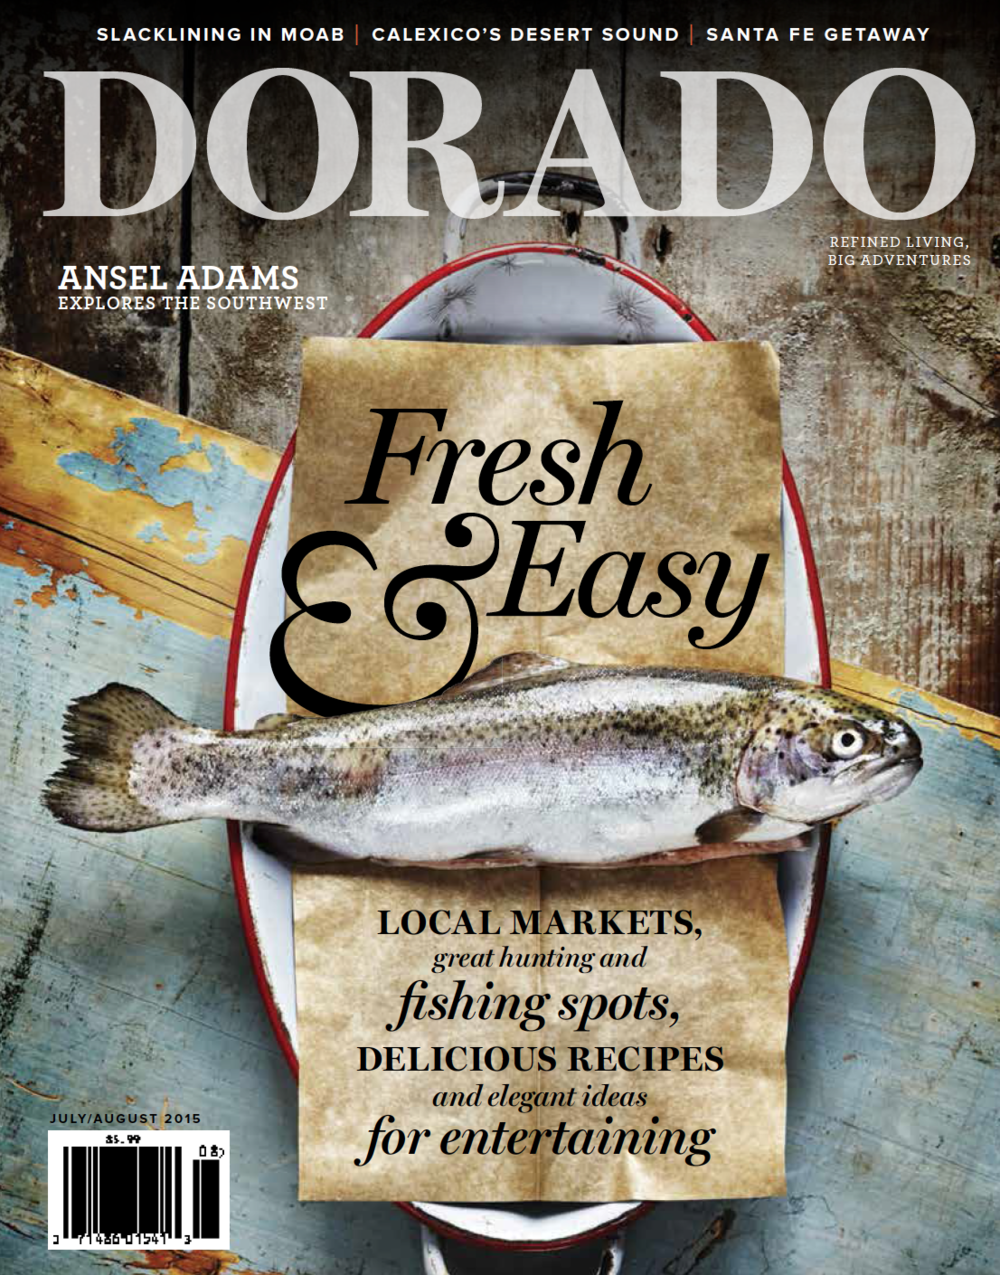 dorado_Aug15_cover.png